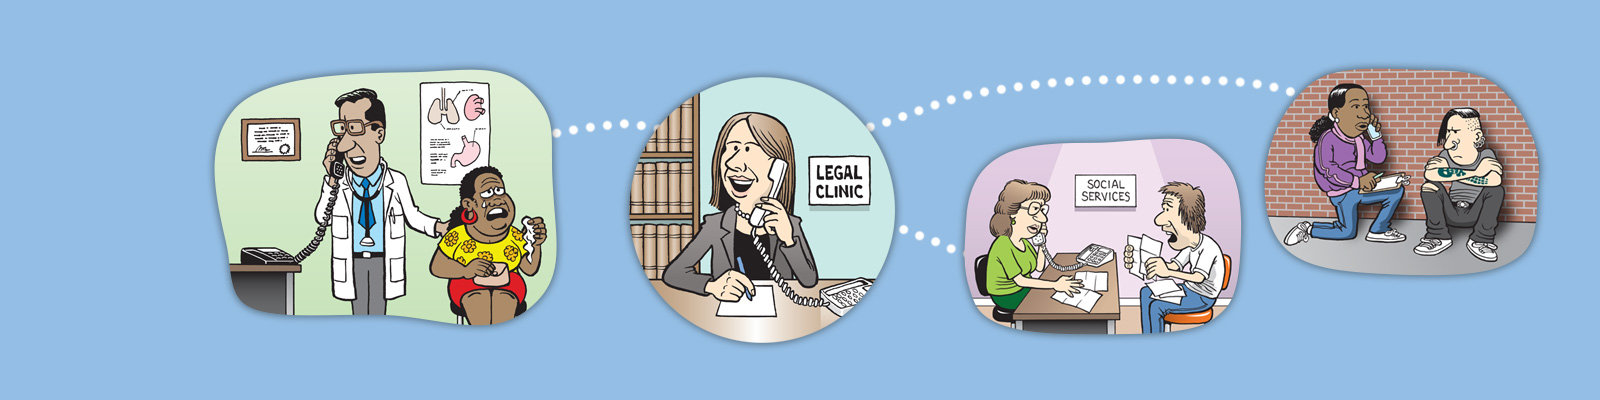 illustration of public services calling the legal health clinic